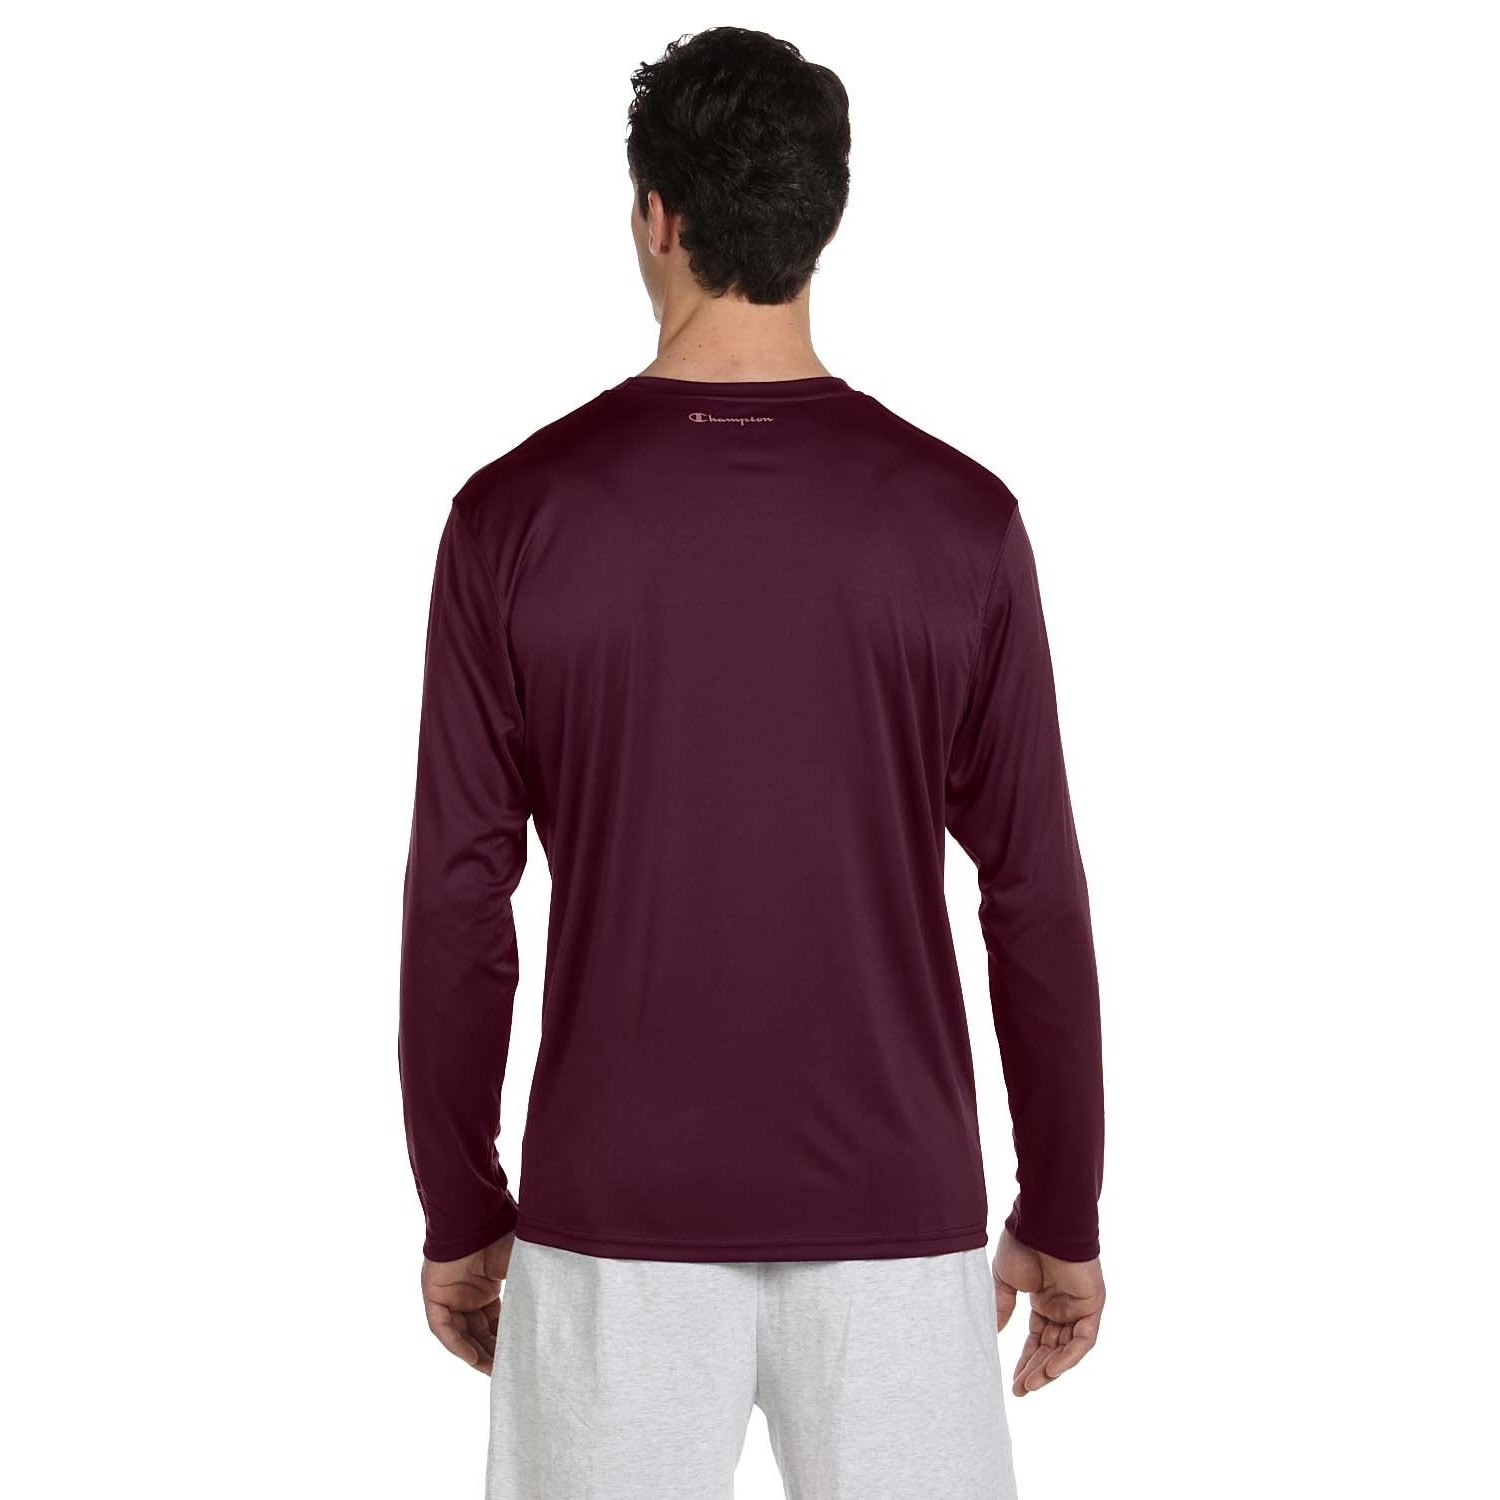 039653e4 Shop Champion Men's Double Dry Performance Long Sleeve T-shirt - On Sale -  Free Shipping On Orders Over $45 - Overstock - 8984873